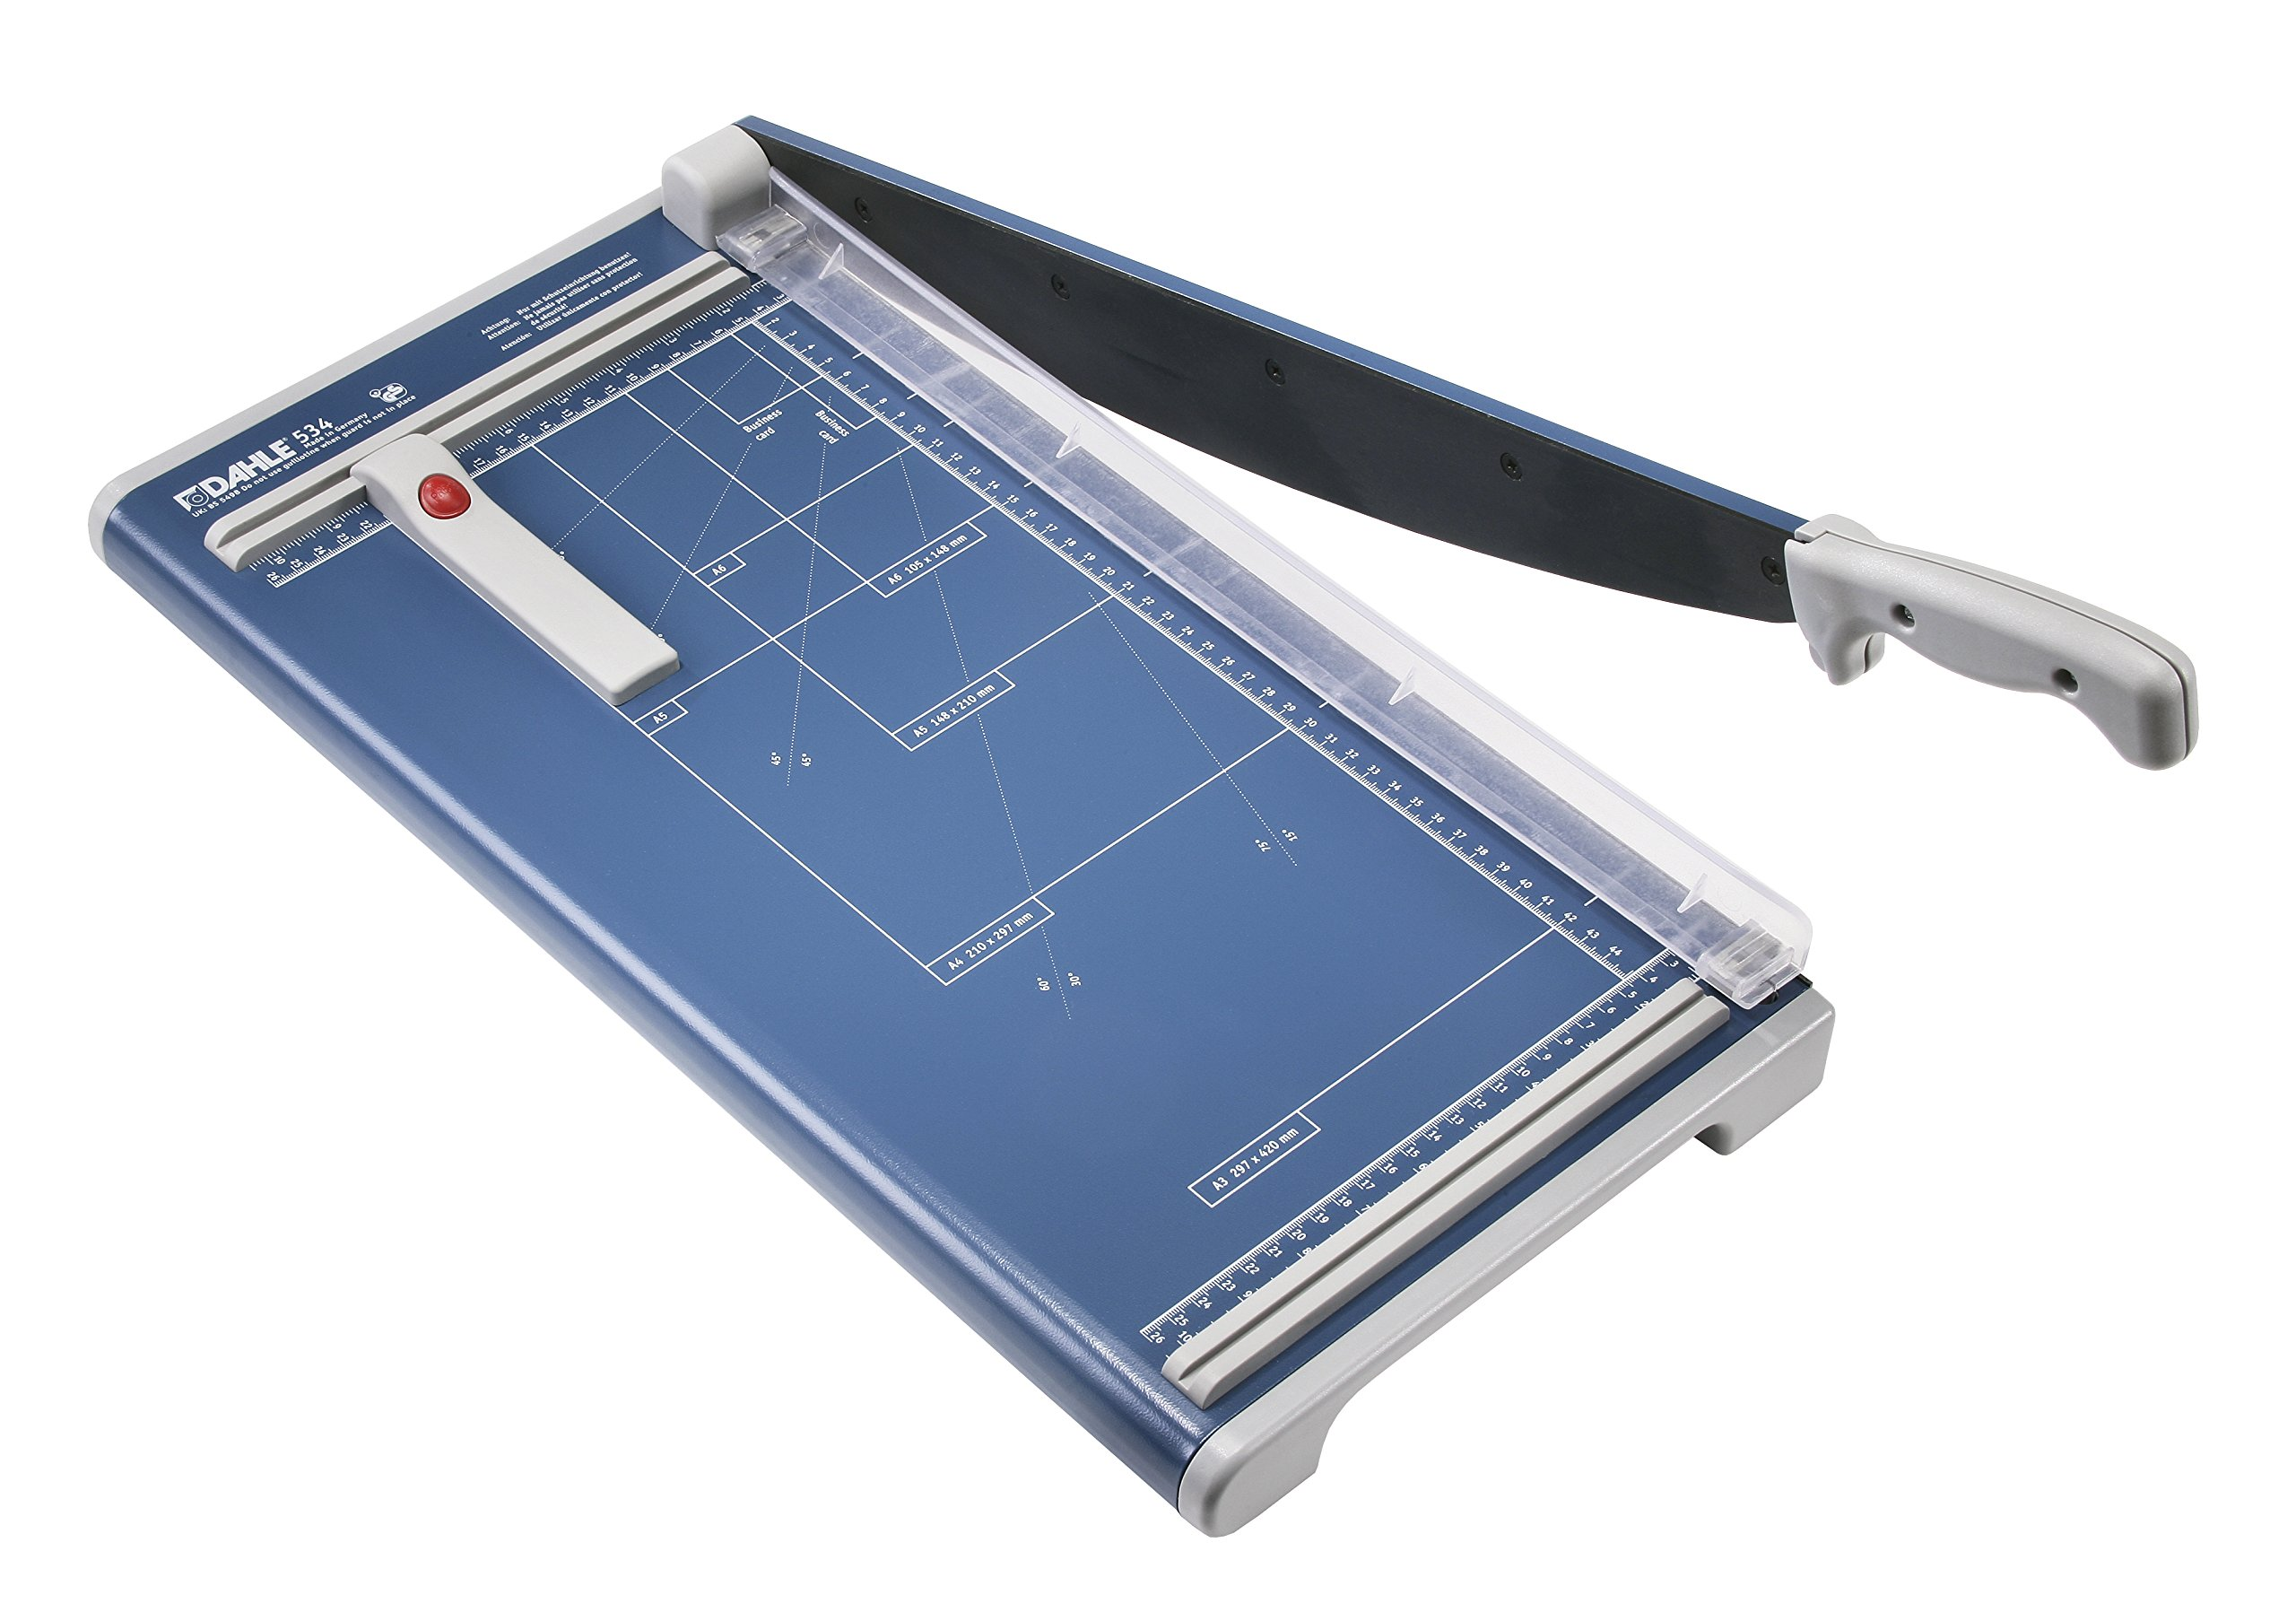 Dahle 534 Professional Guillotine Trimmer, 18'' Cut Length, 15 Sheet Capacity, Self-Sharpening, Manual Clamp, German Engineered Cutter by Dahle